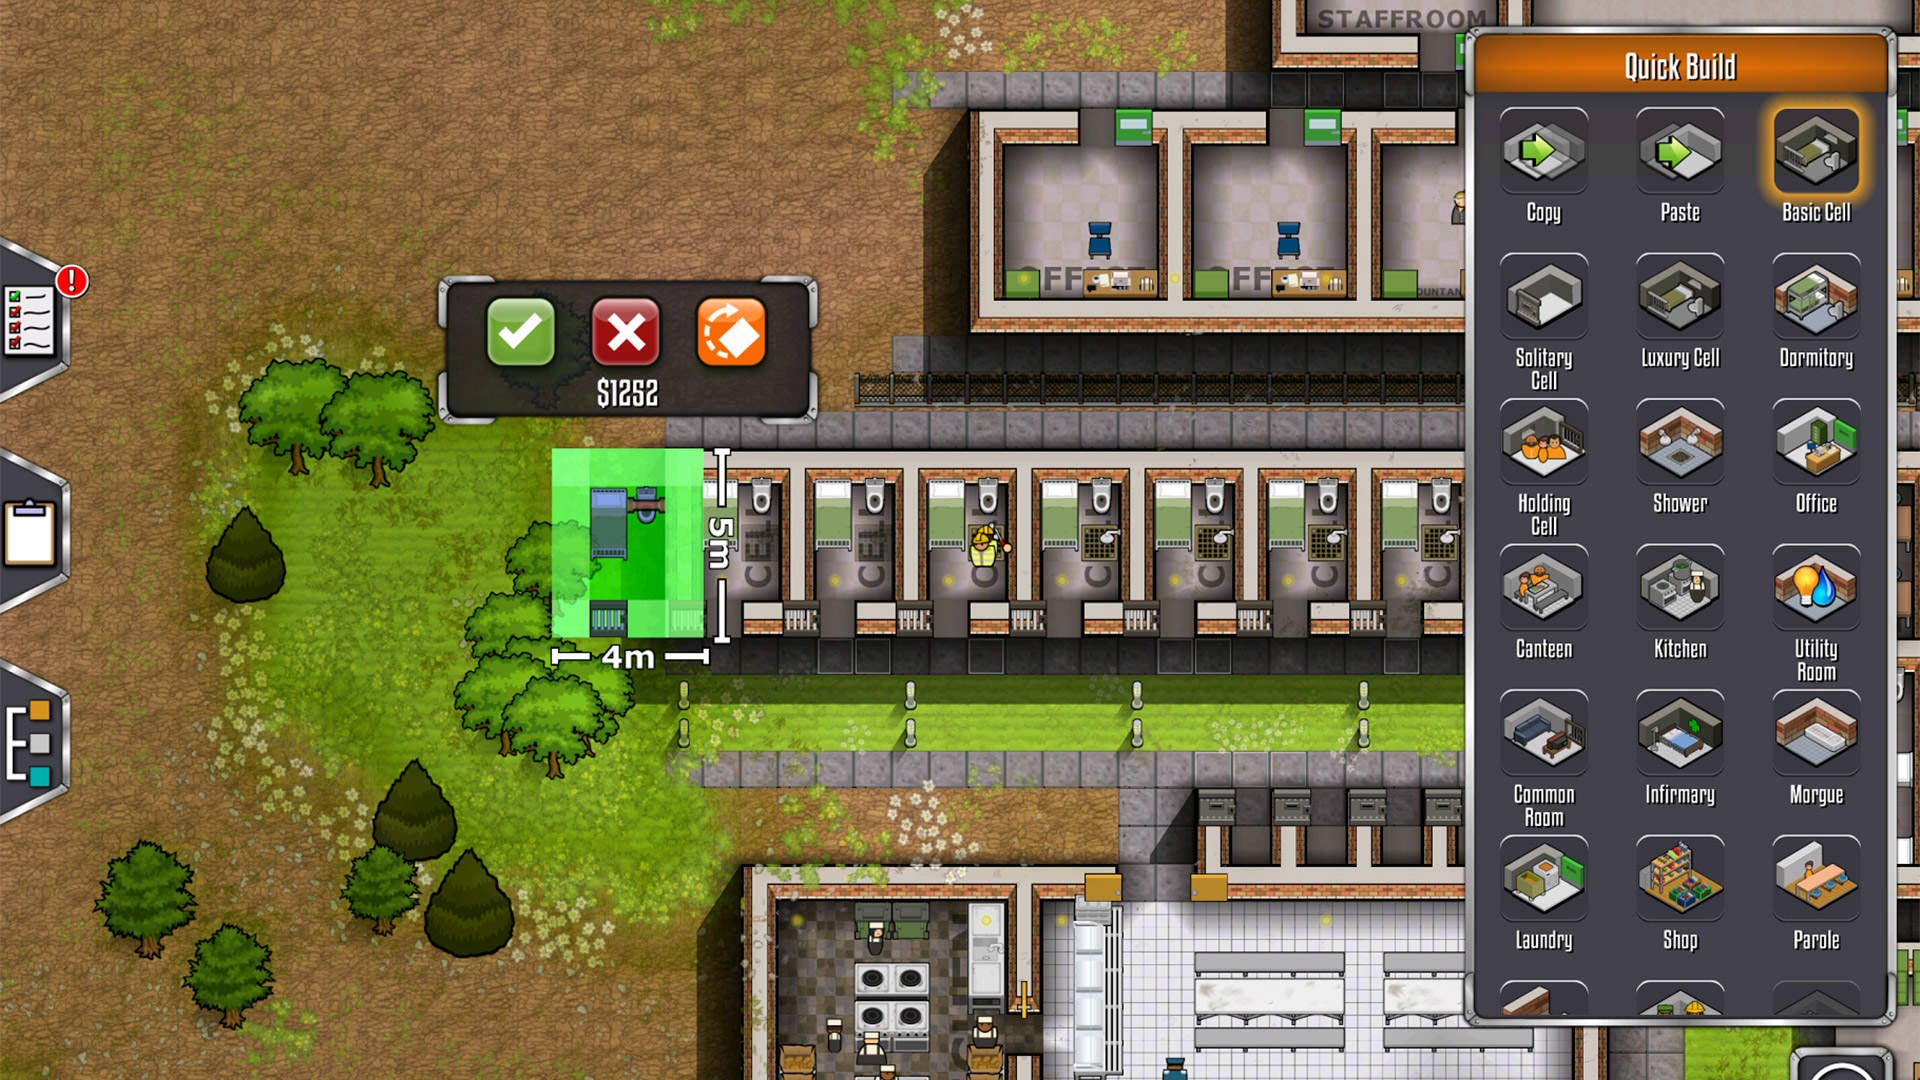 بازی اندروید Prison Architect: Mobile